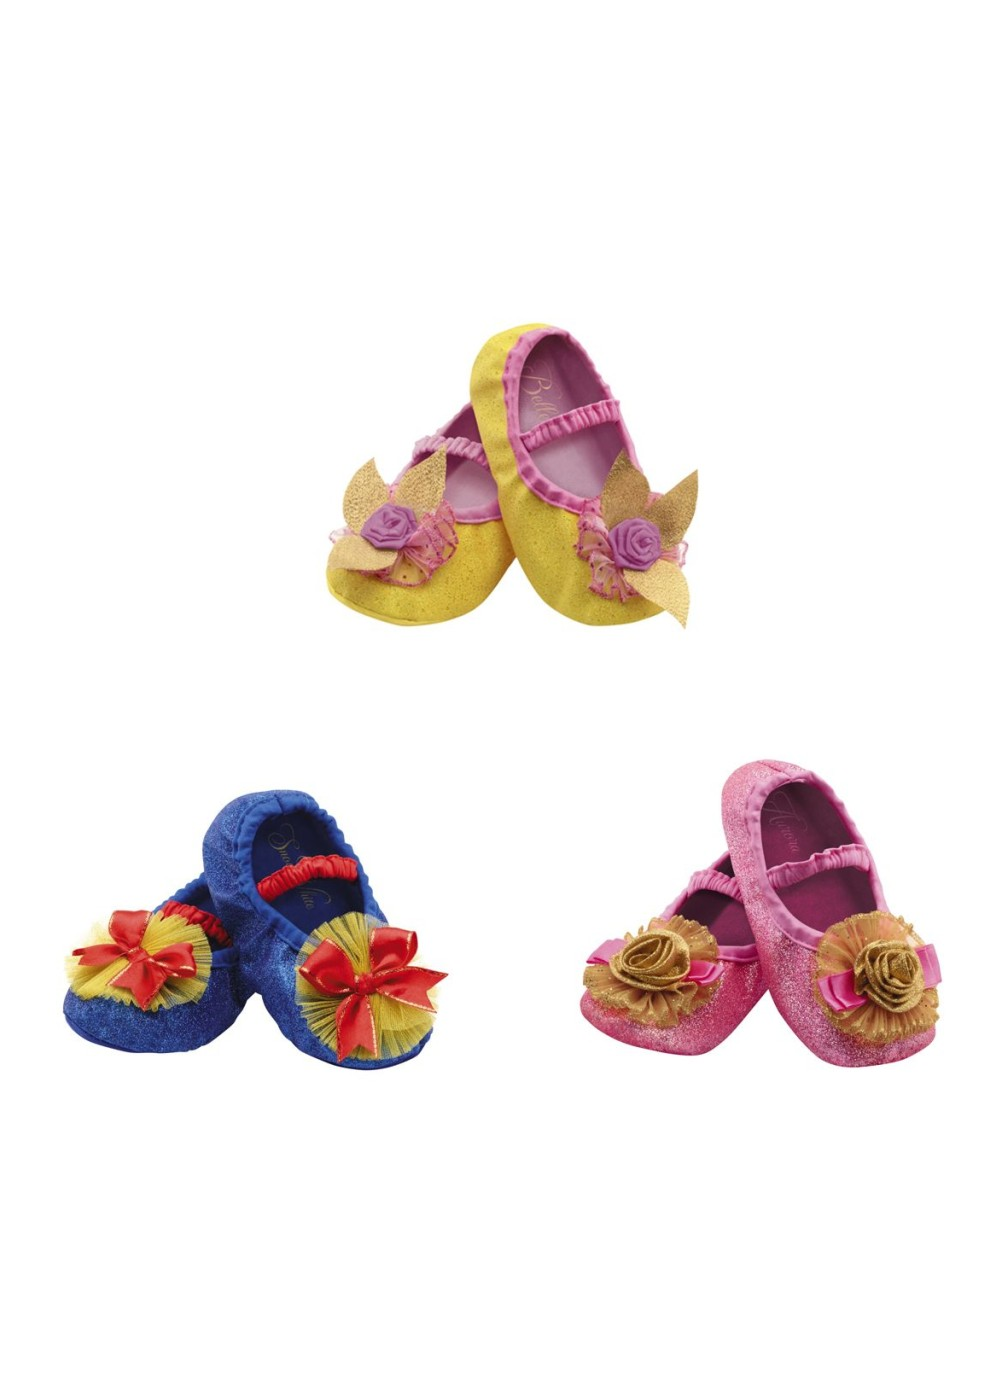 Aurora Toddler Slippers Disney Princess Shoes Halloween Child Costume Accessory